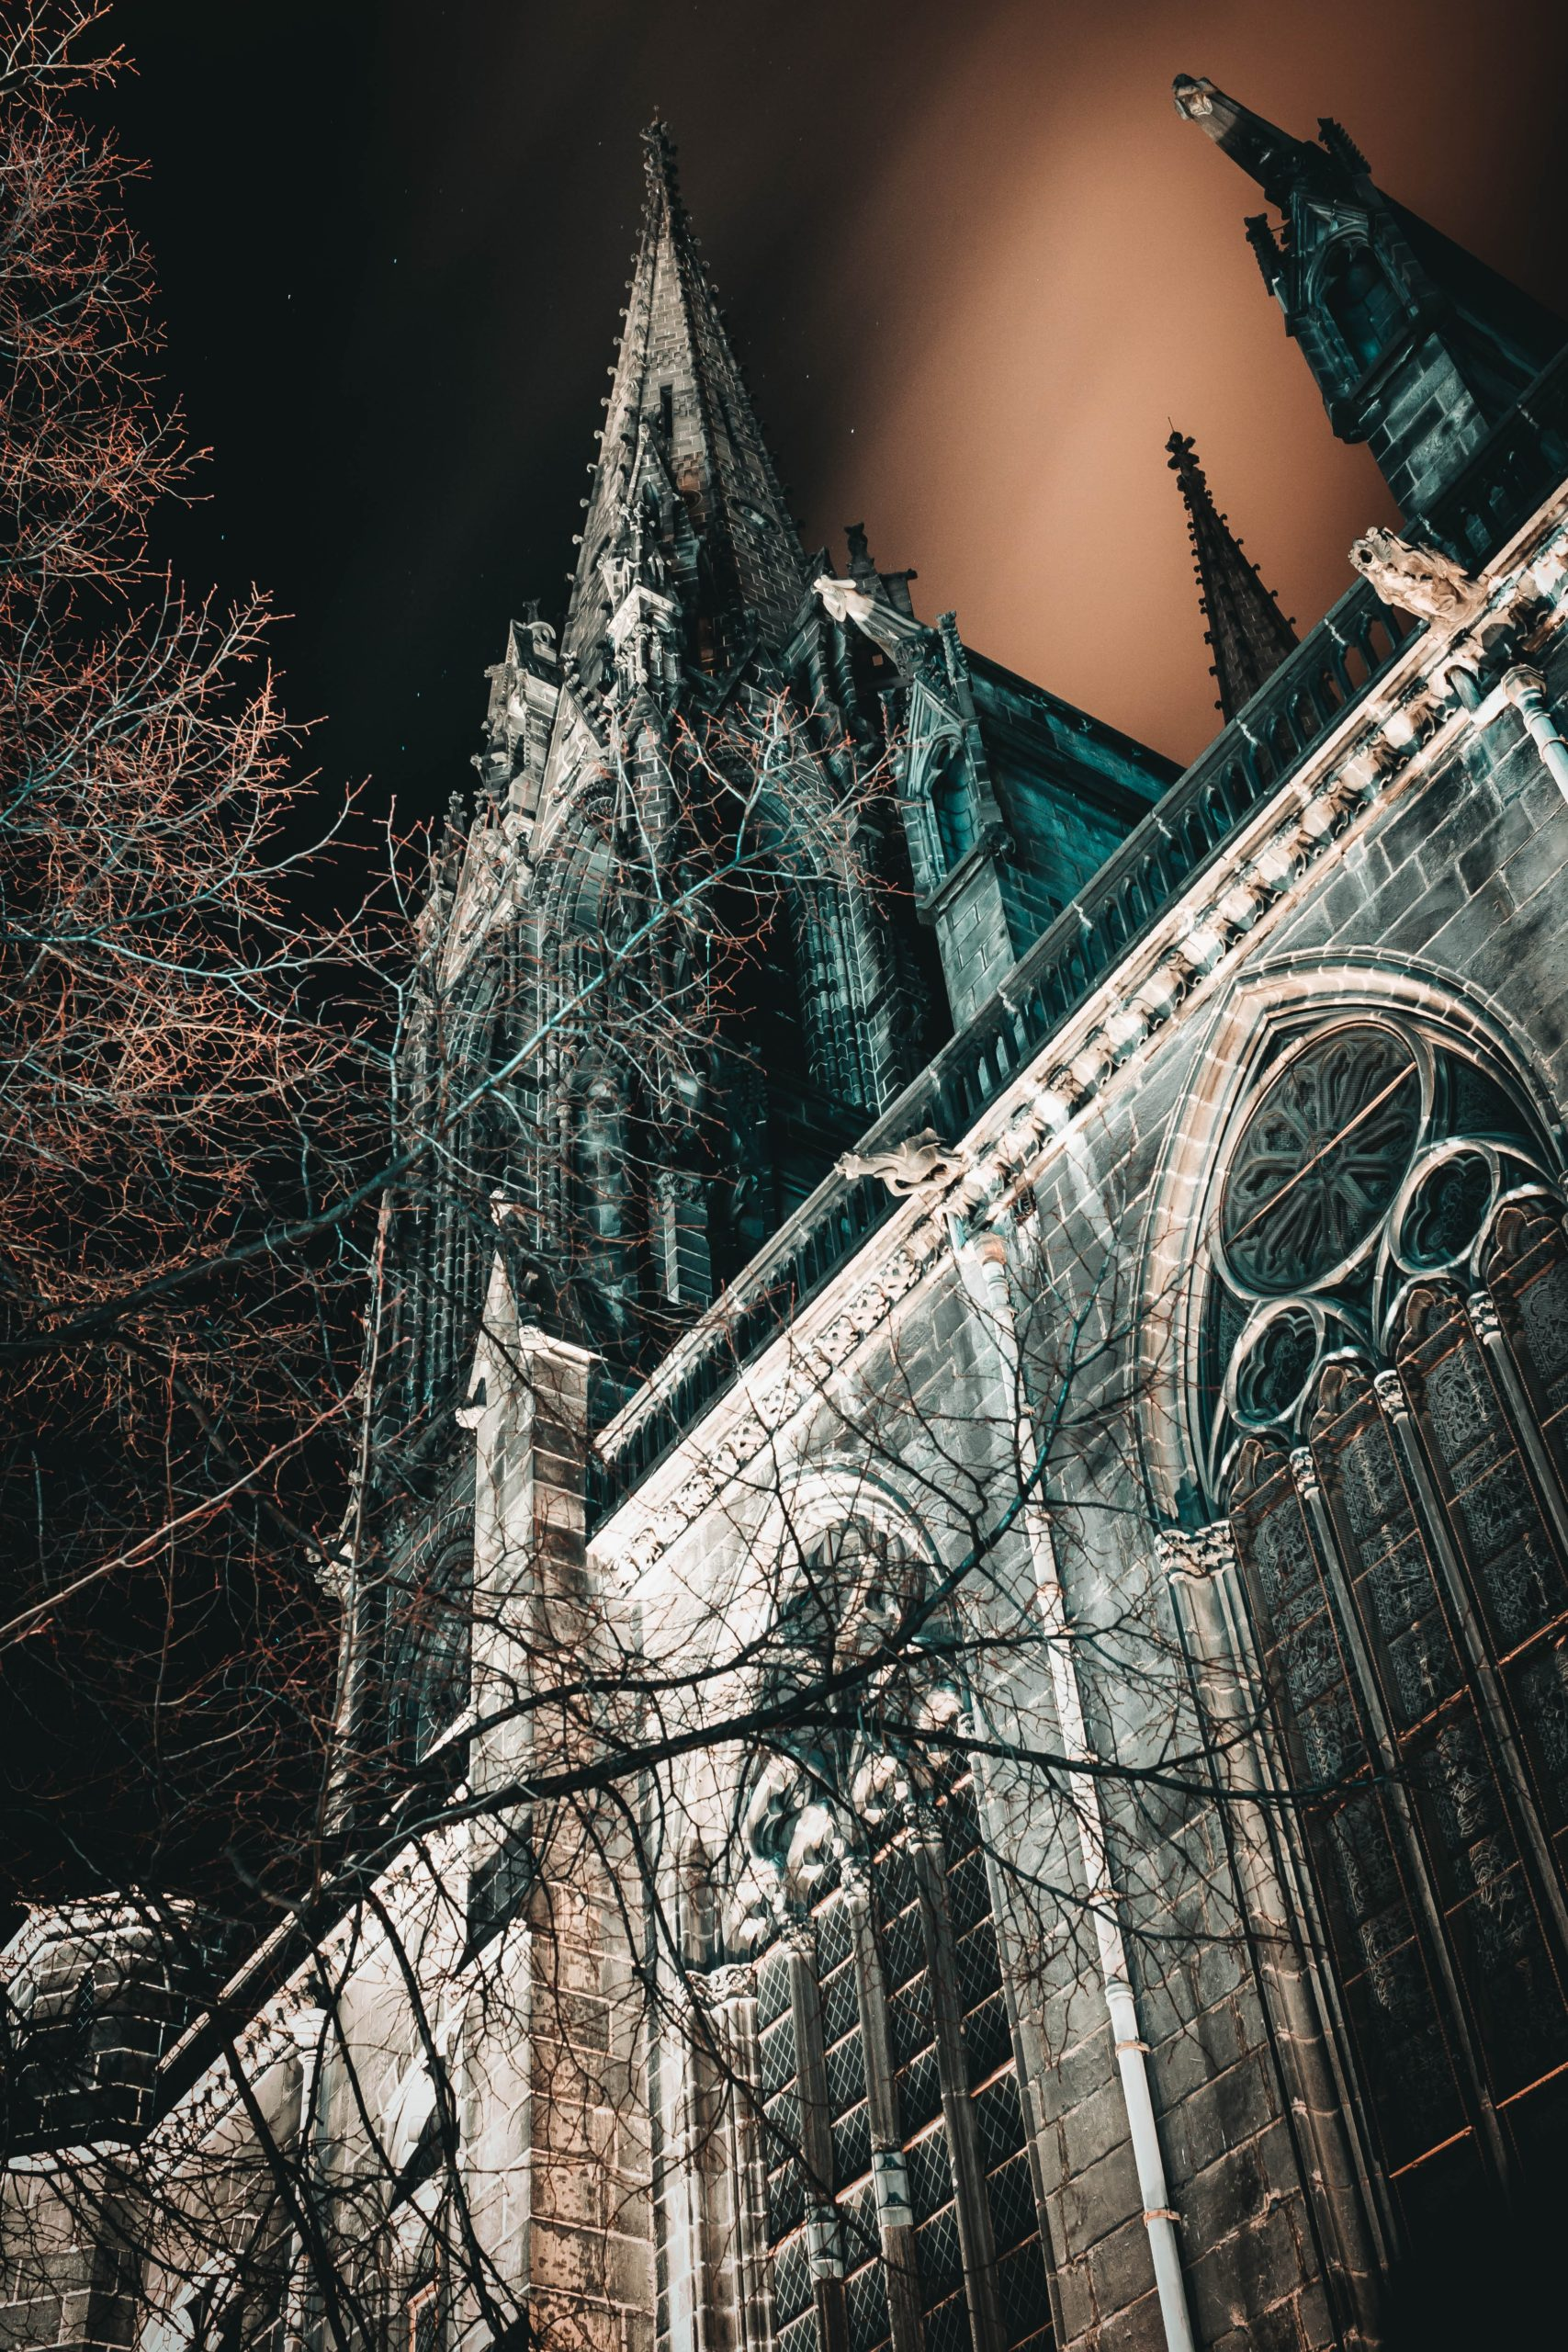 Cathédrale Clermont-Ferrand de nuit Photo by Mat Reding on Unsplash